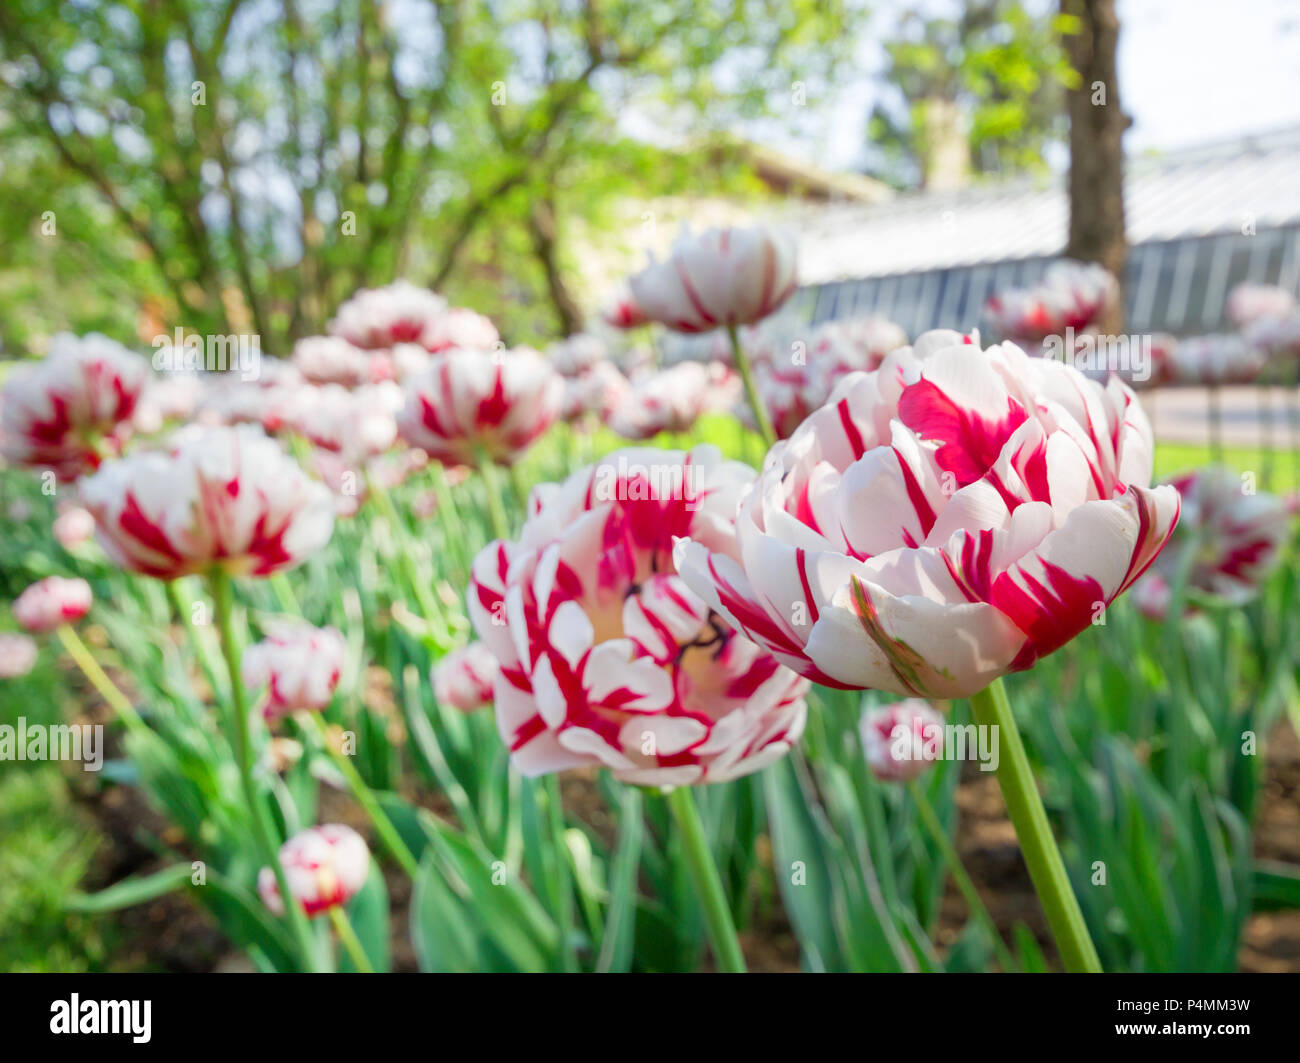 Beautiful, colorful bouquet blooming of tulips fields, spring tulip blossom flowers background. - Stock Image